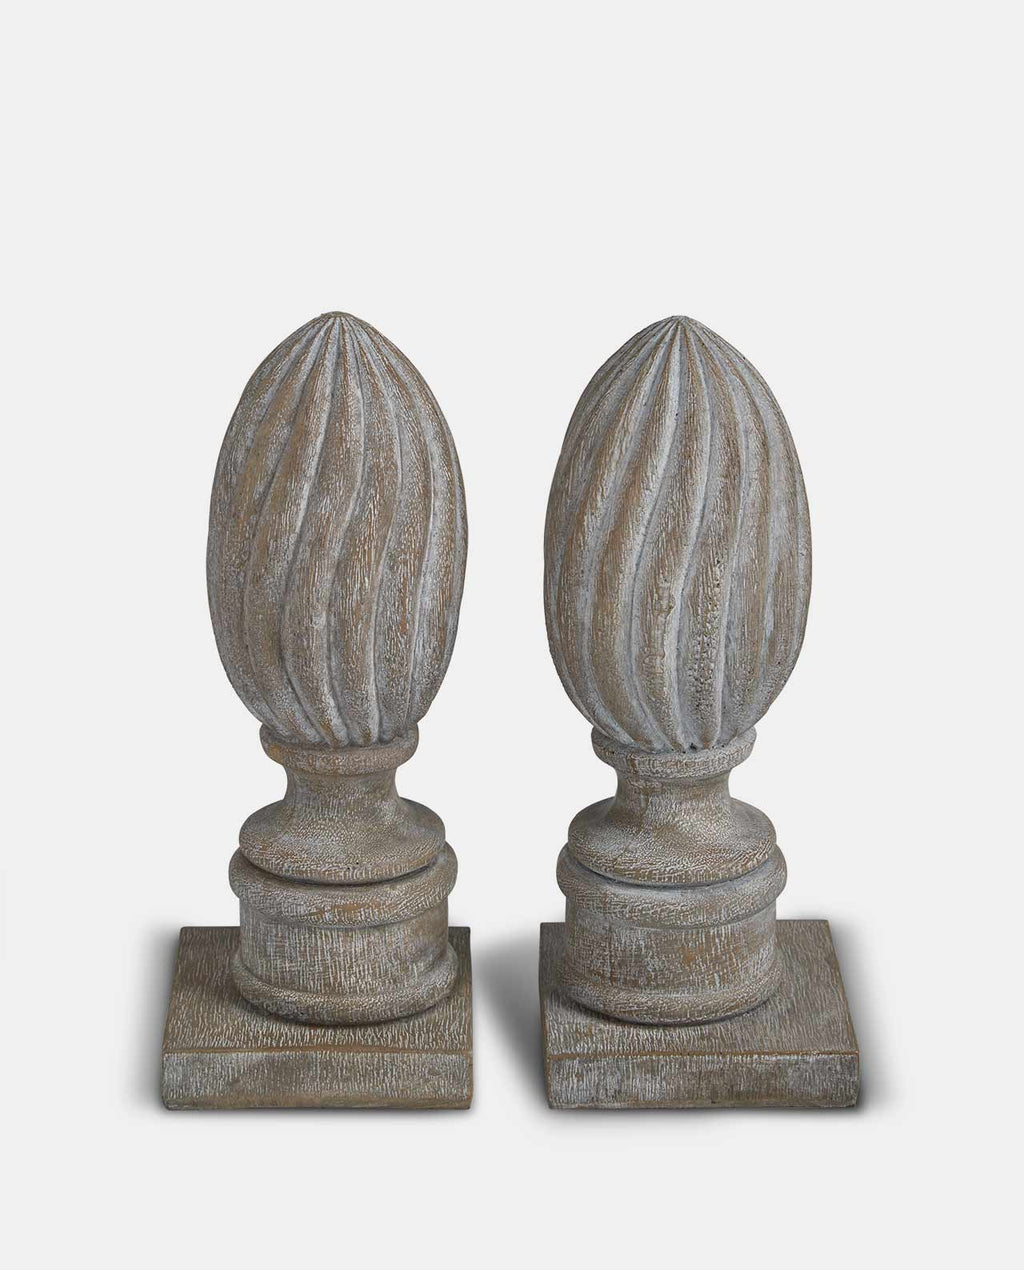 Grey finial bookends